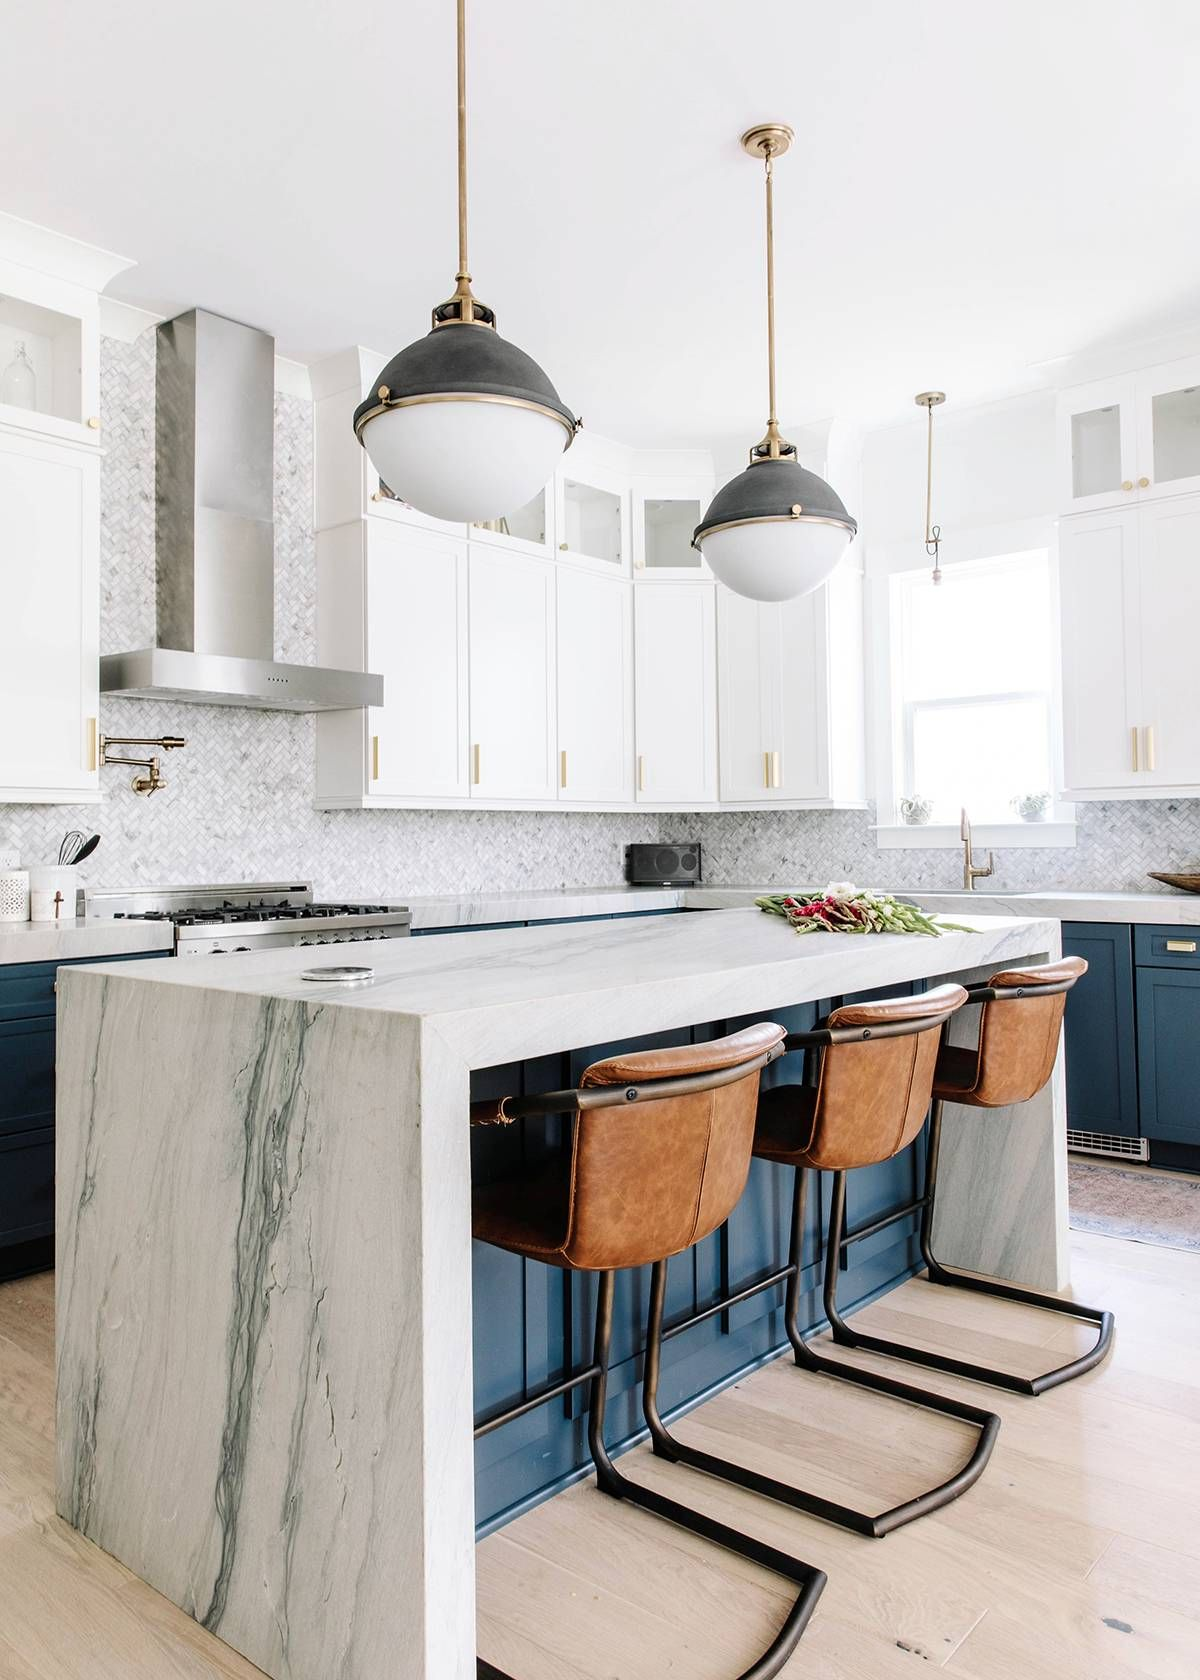 Striking Blue Cabinetry Is Just The Beginning In This Quaint North